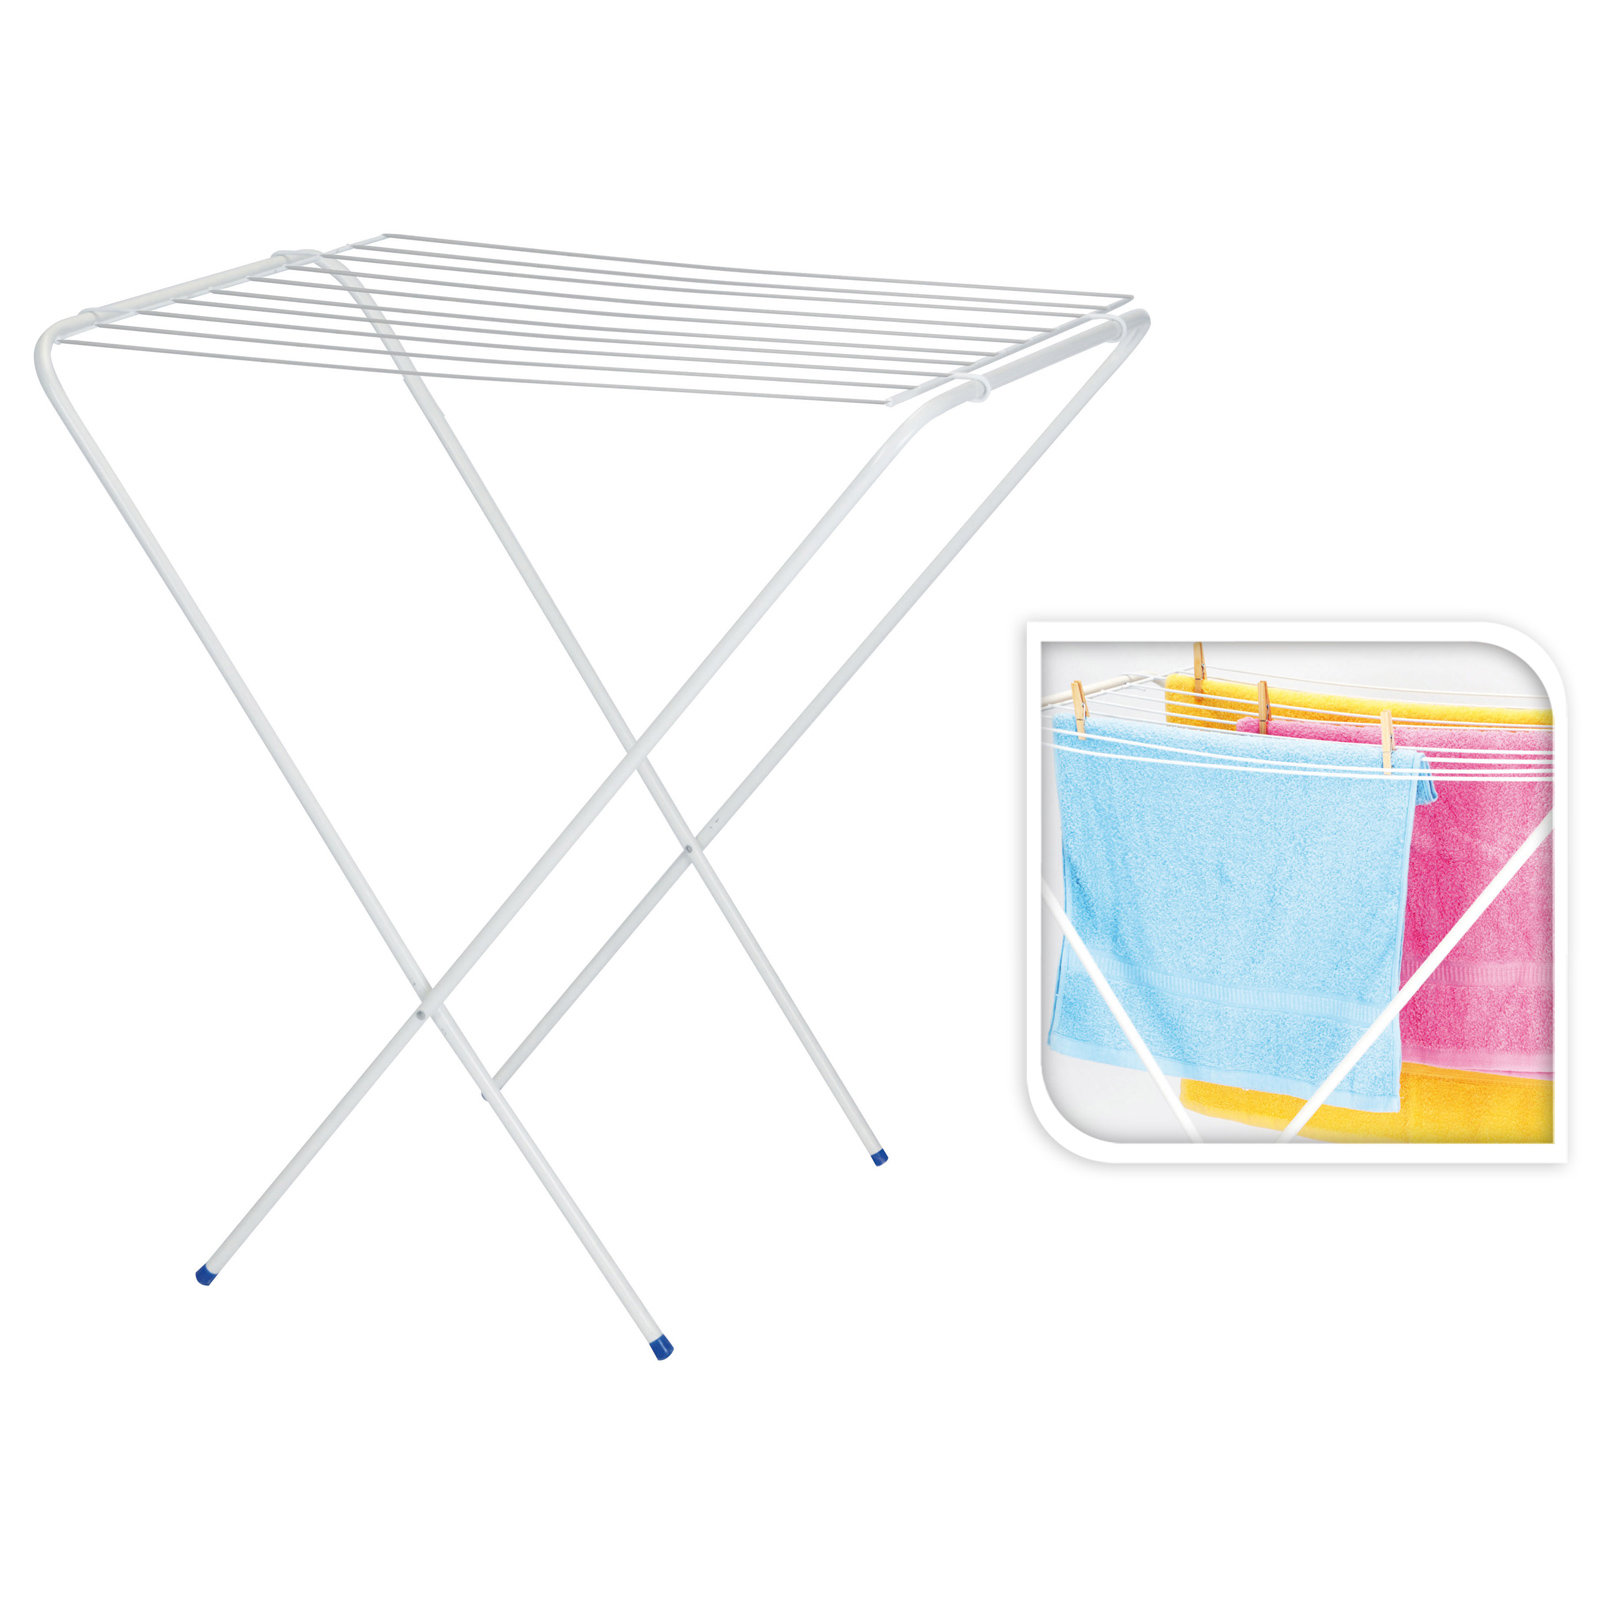 Clothes Laundry Airer Dryer Outdoor Indoor Washing Horse